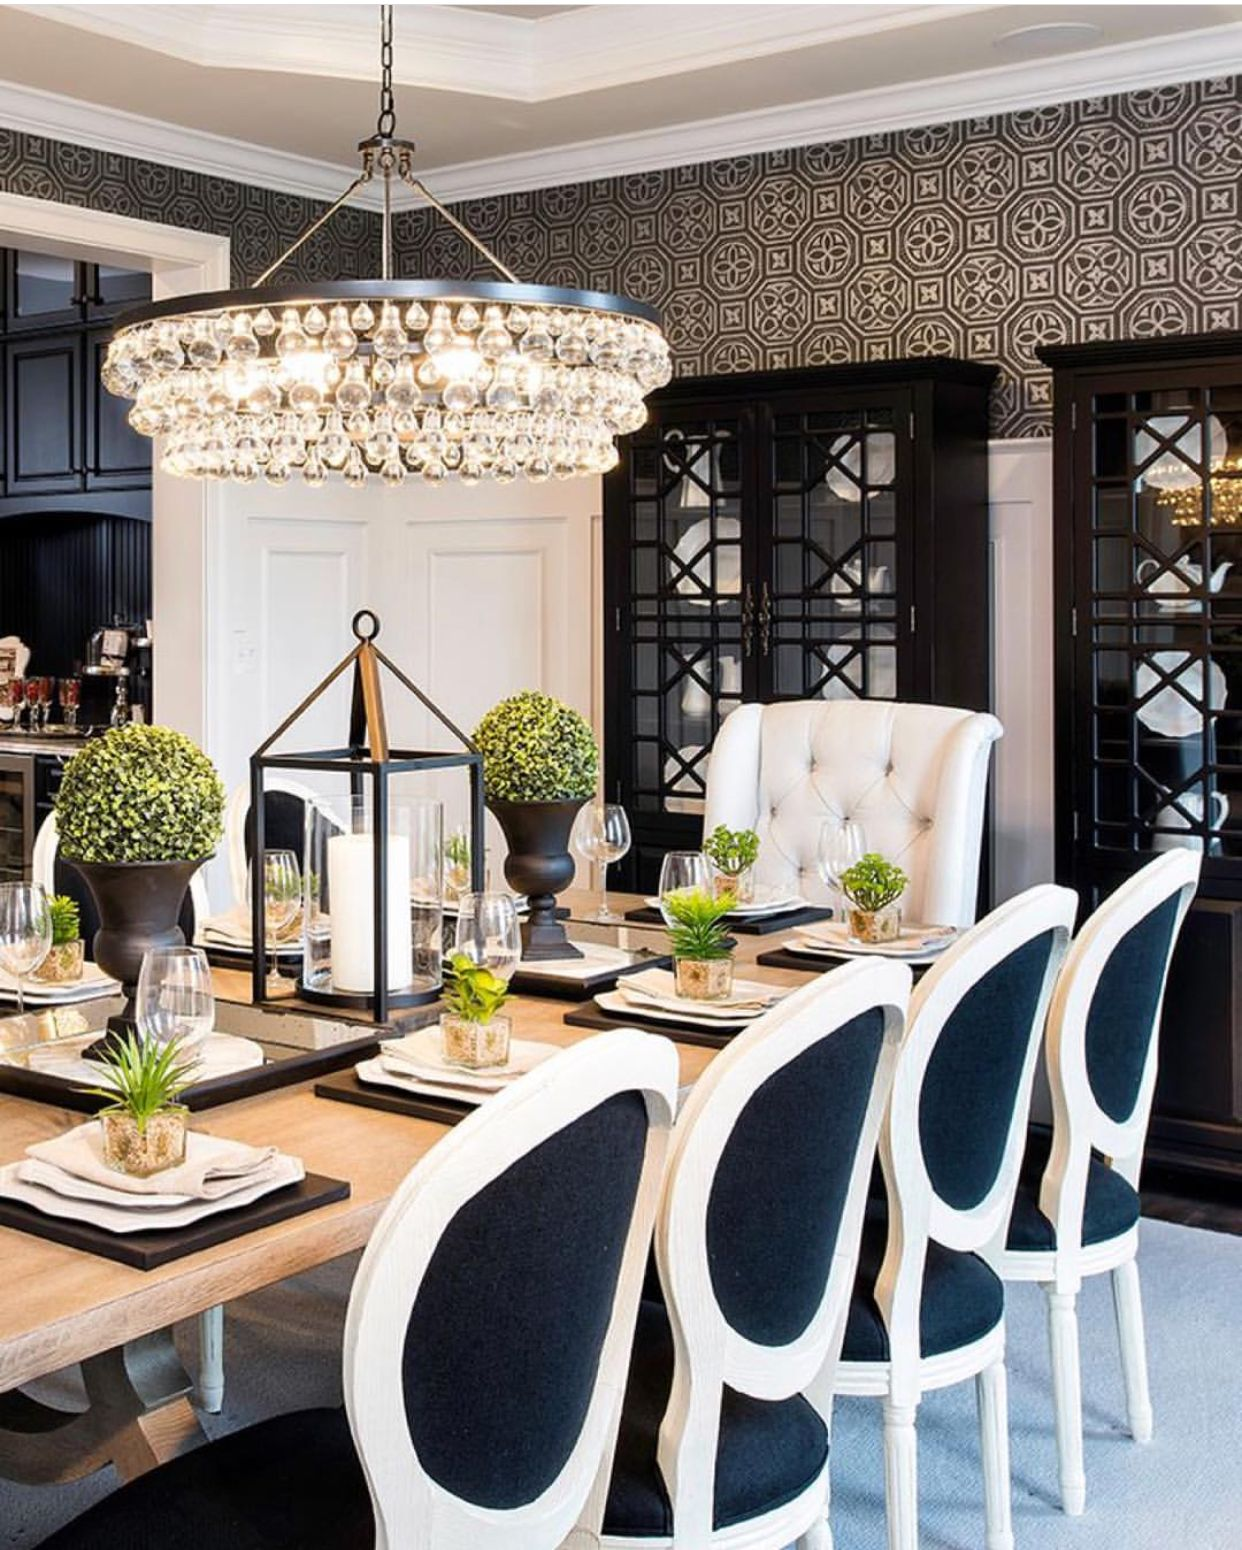 Black And White Dinningroom Dining Room Centerpiece Luxury Dining Room Elegant Dining Room